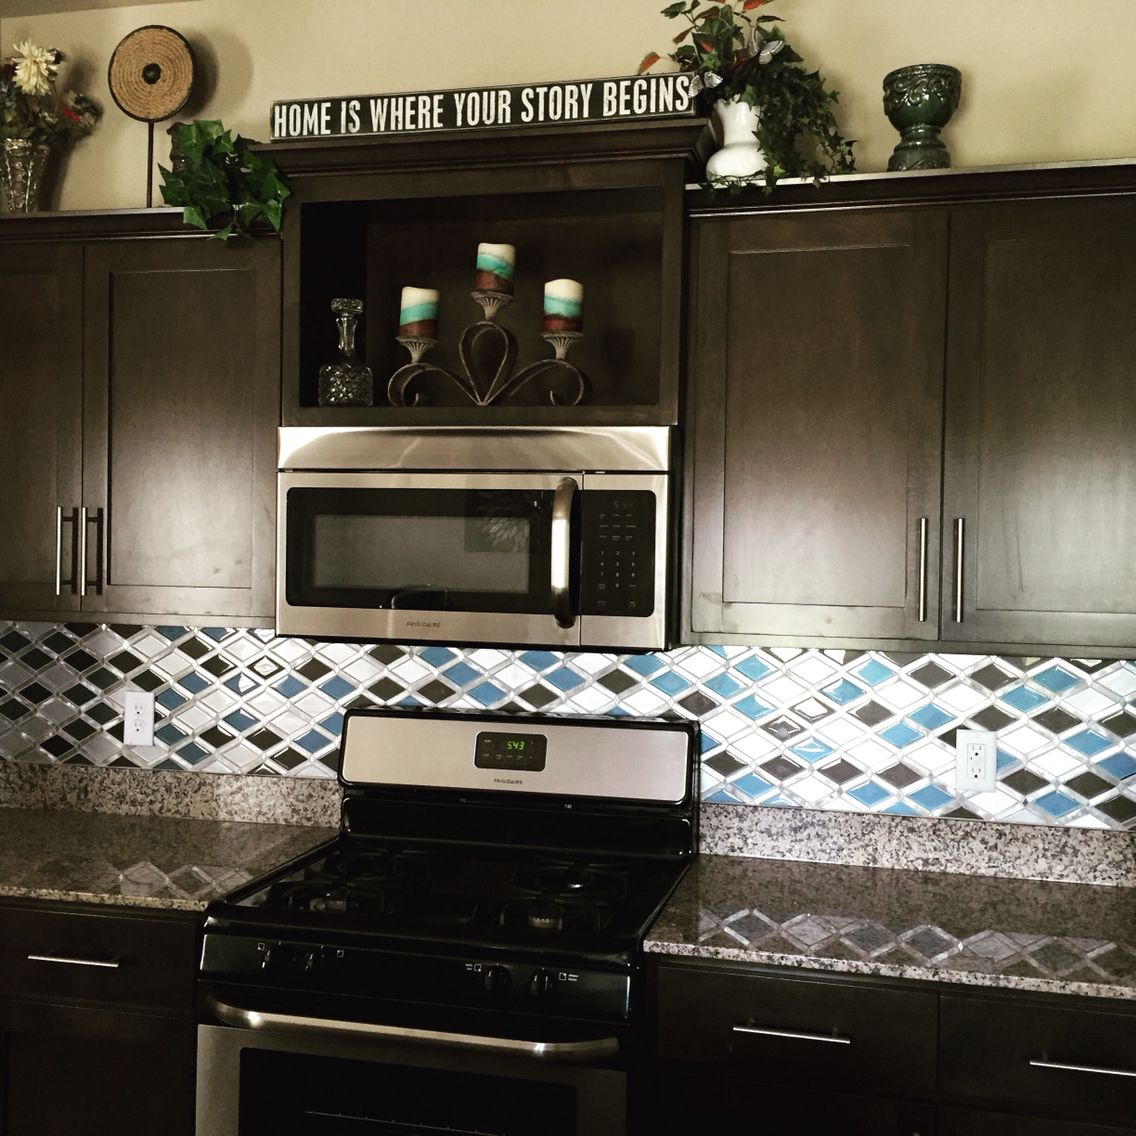 Glass stone mosaic kitchen backsplash photo marazzi pictures to pin on - My New Kitchen Glazzio Tiles Falling Star Series Cerulean Glass